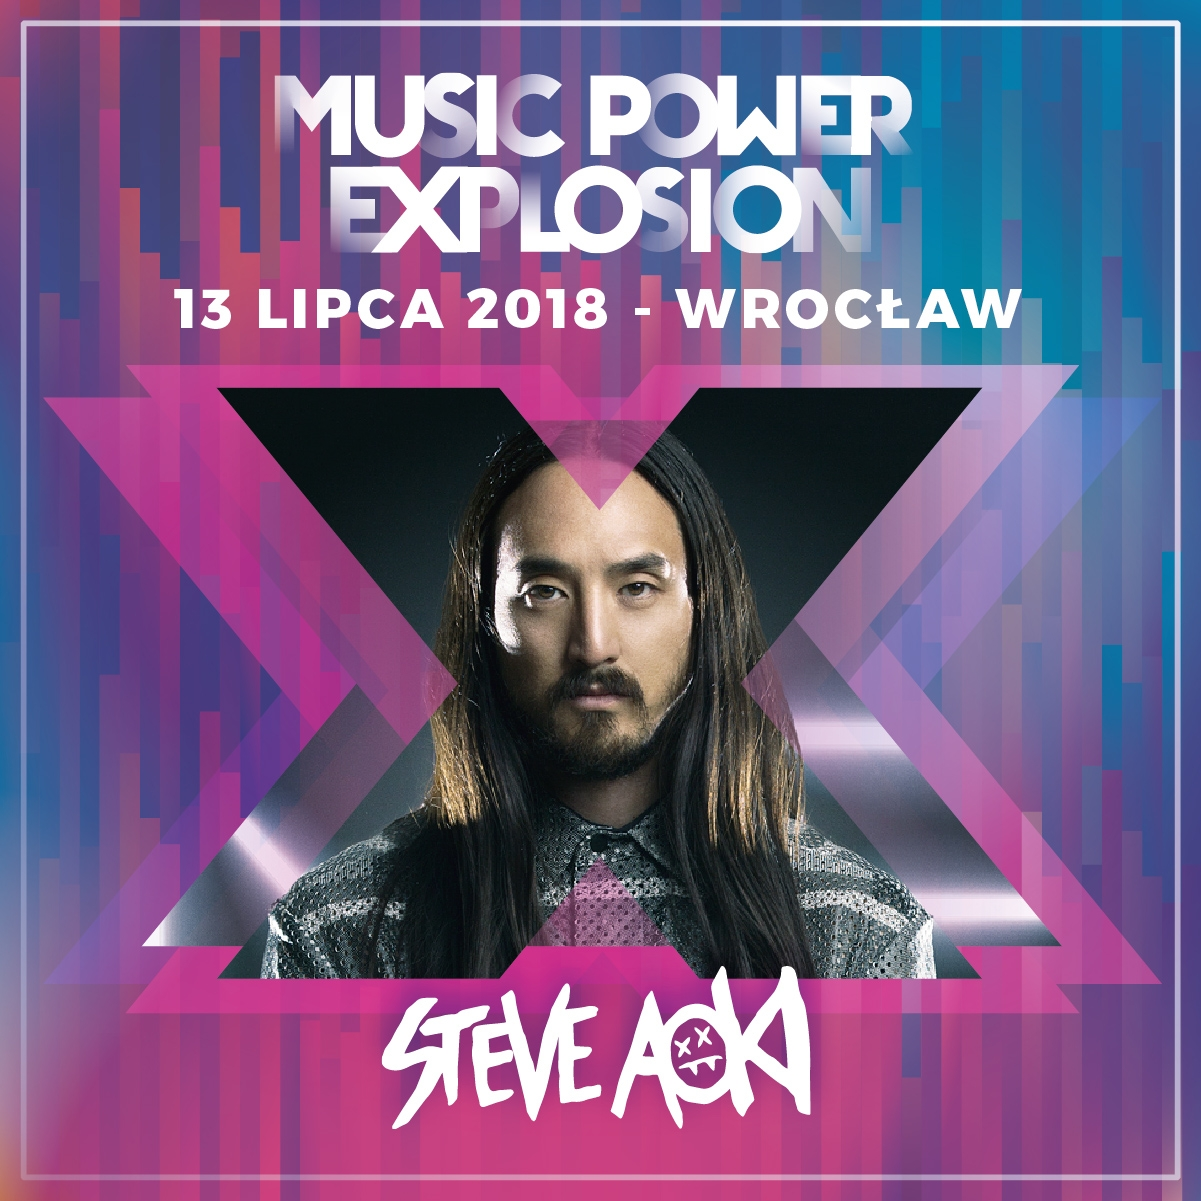 Steve Aoki - drugim headlinerem Music Power Explosion!